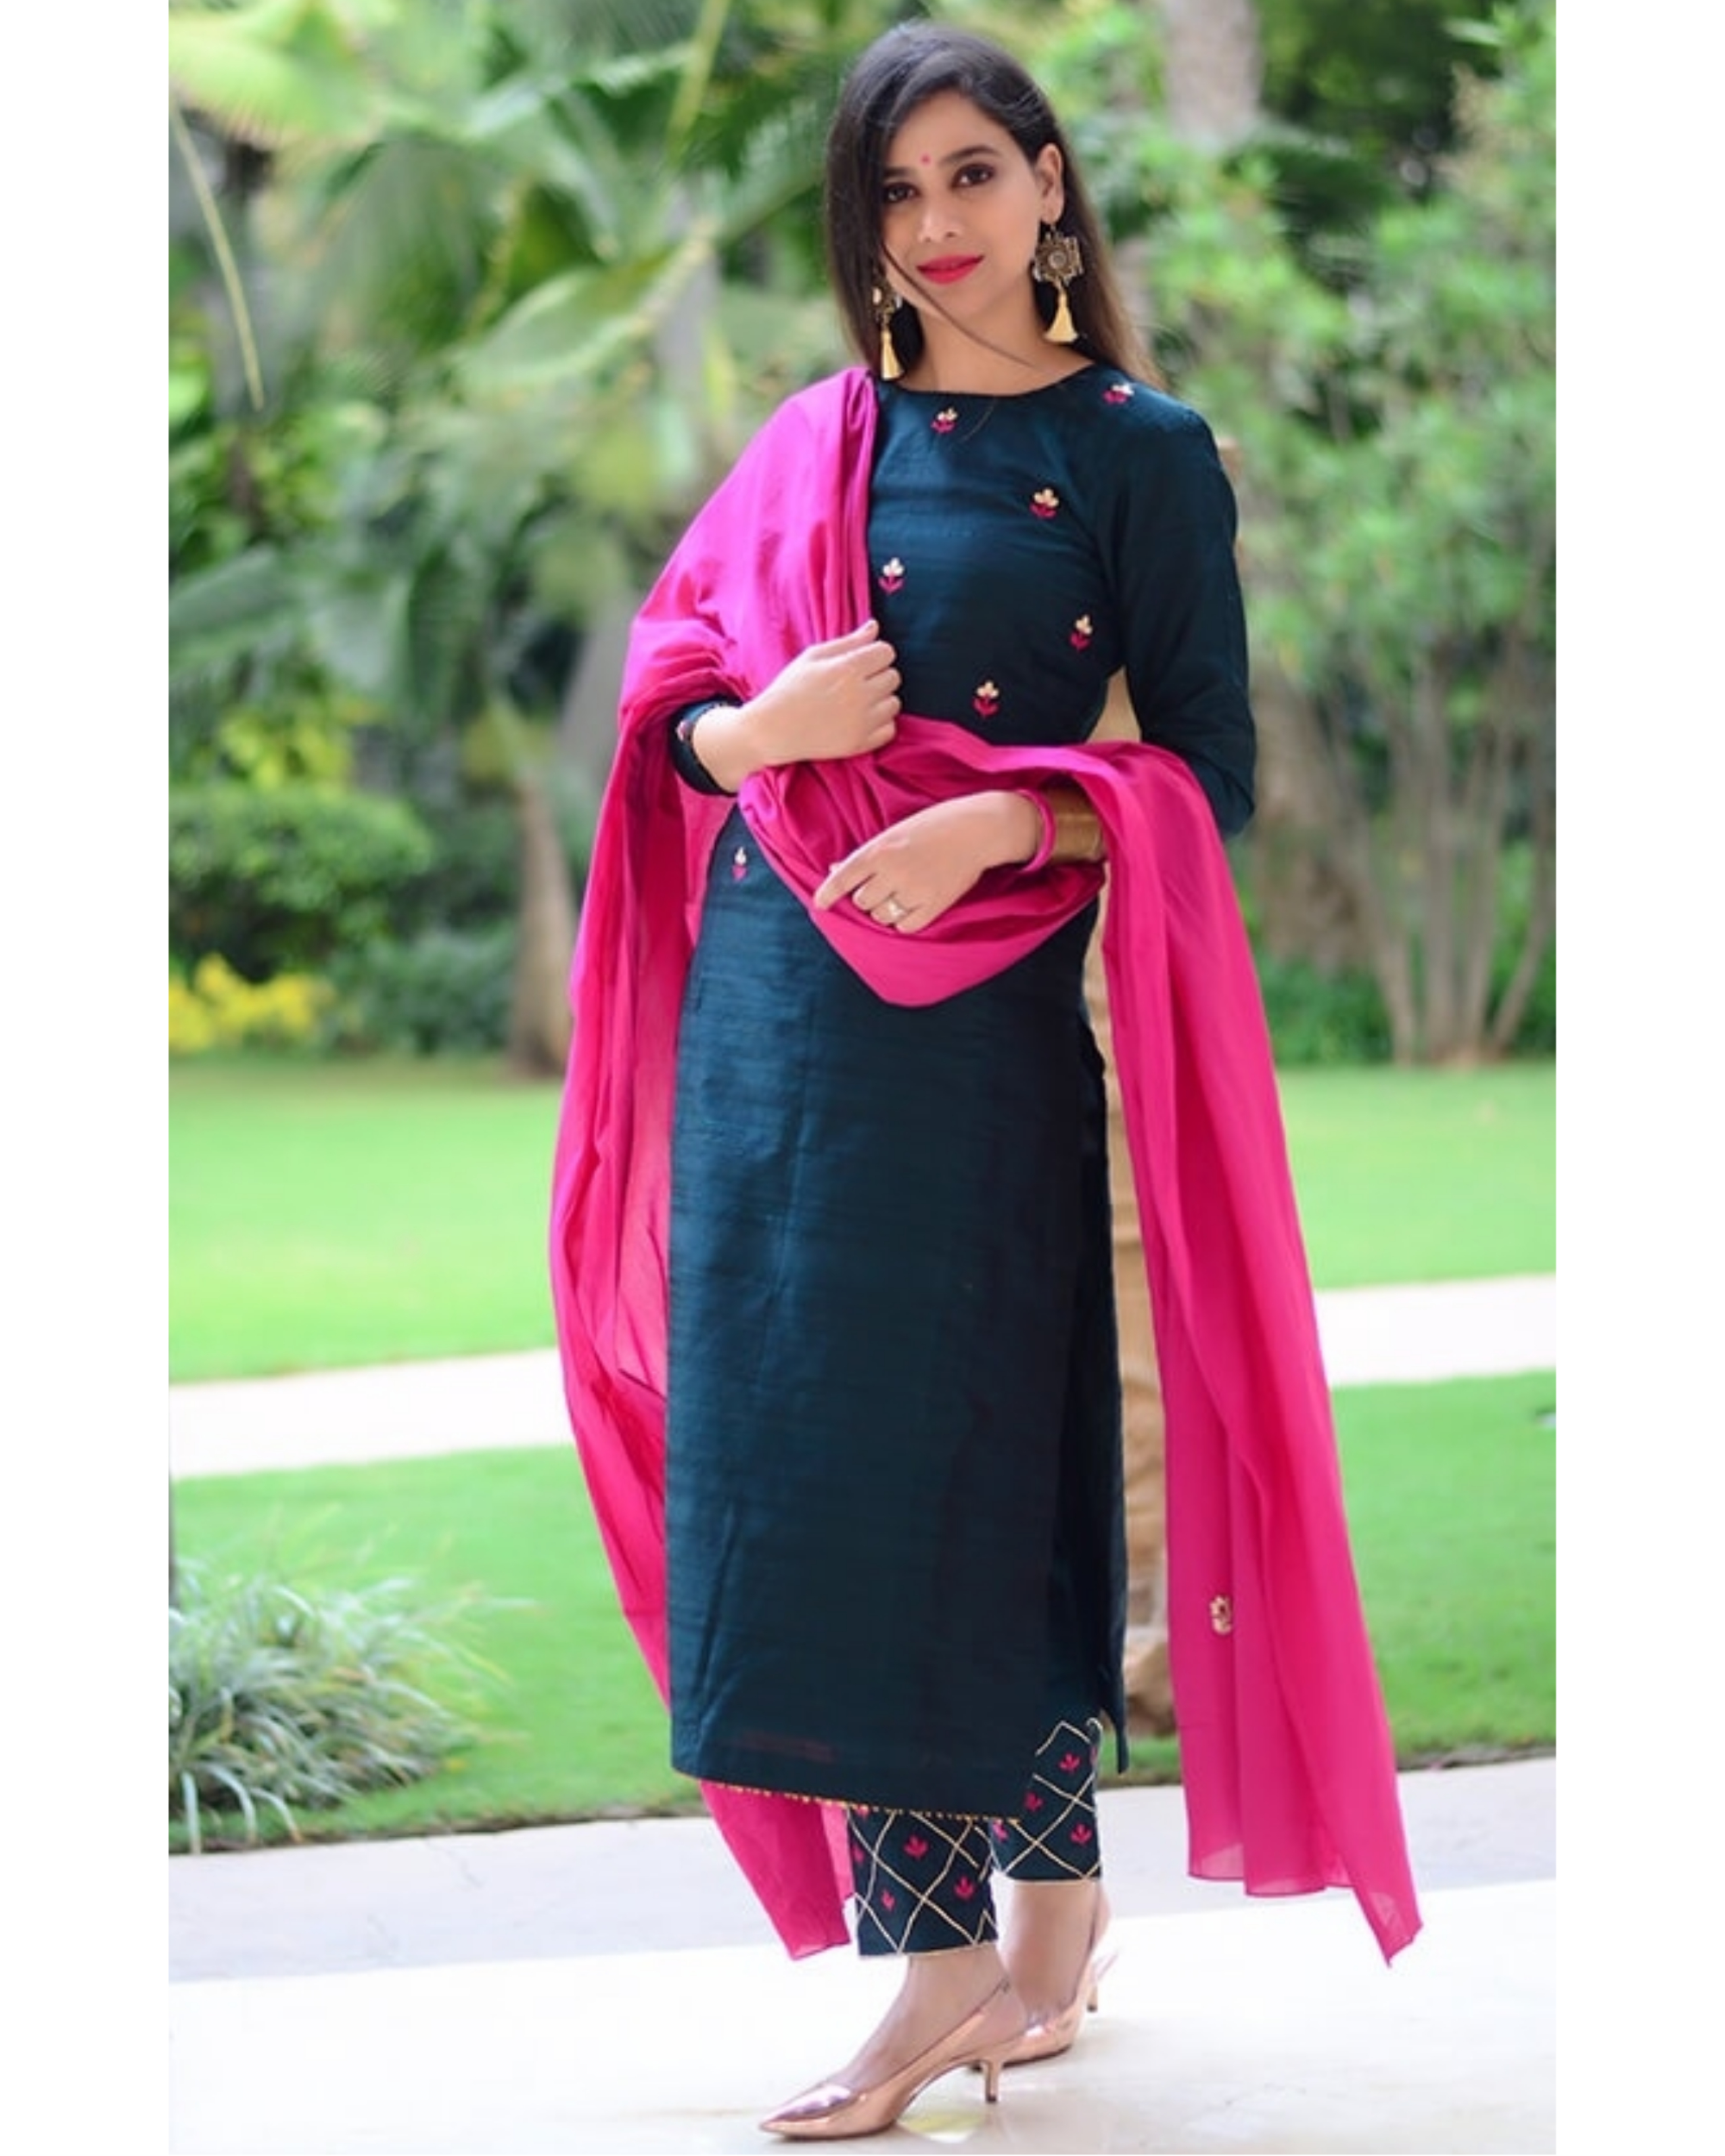 Chrome floral embroidered set with pink dupatta